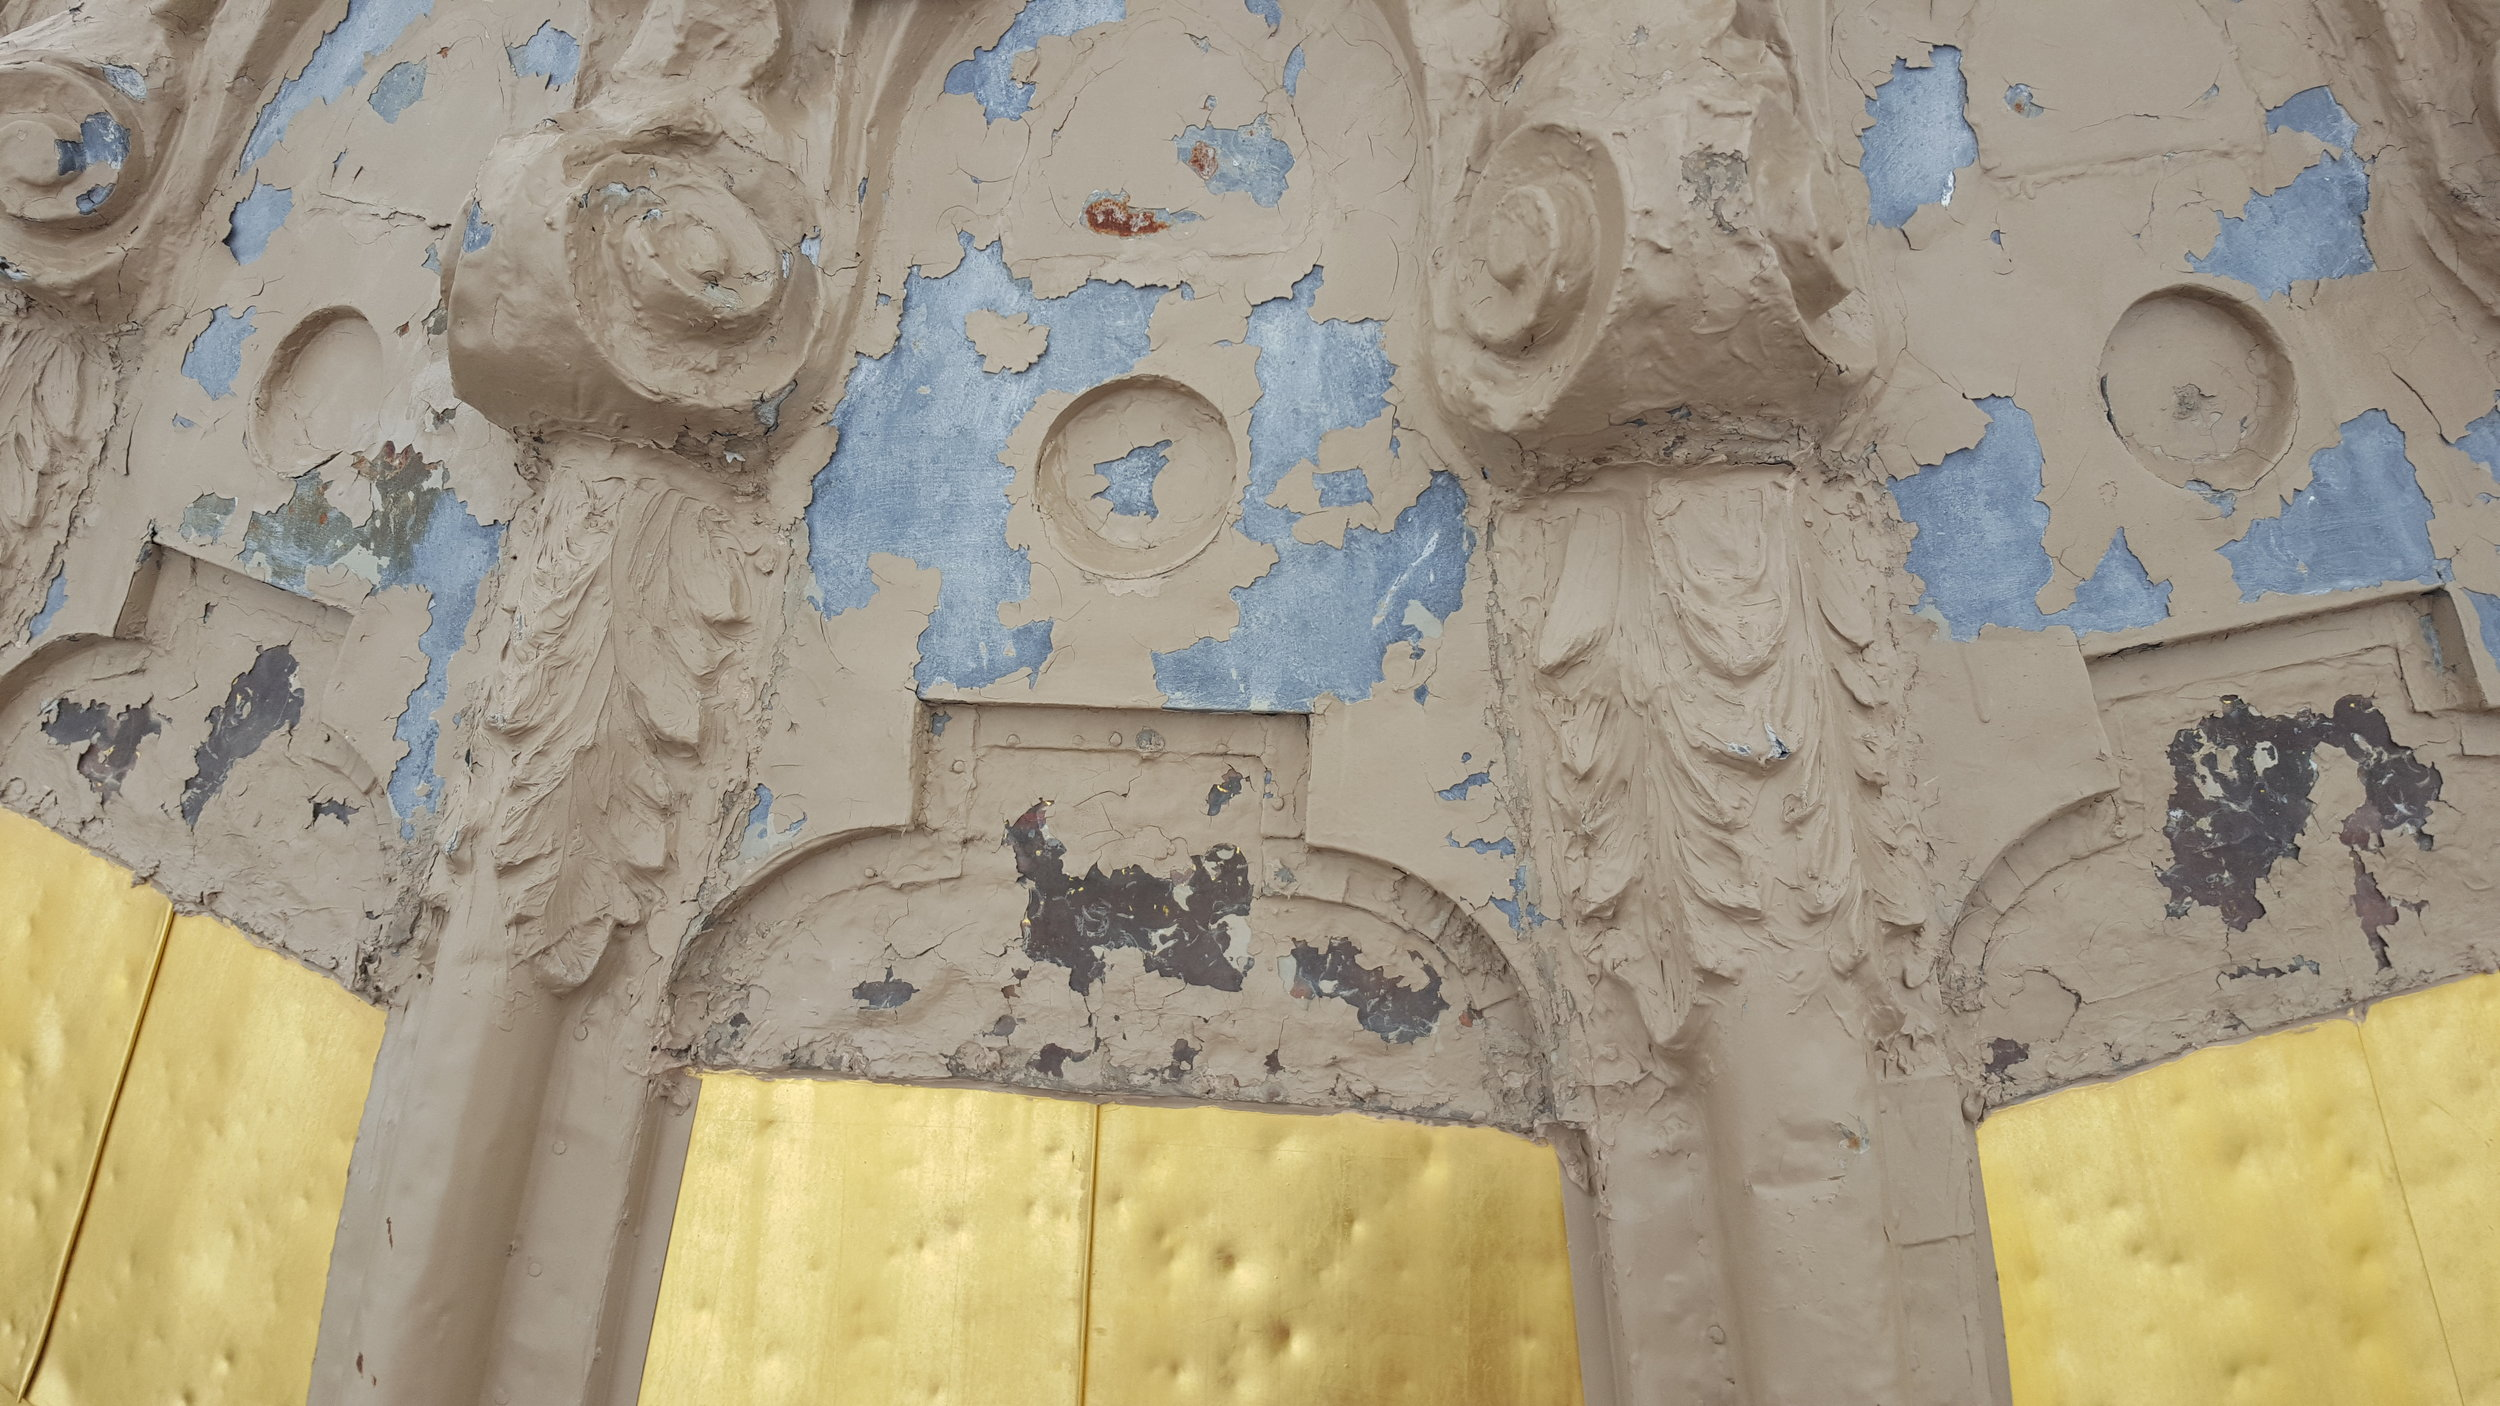 Hail damage and deterioration of materials are evident on the dome.